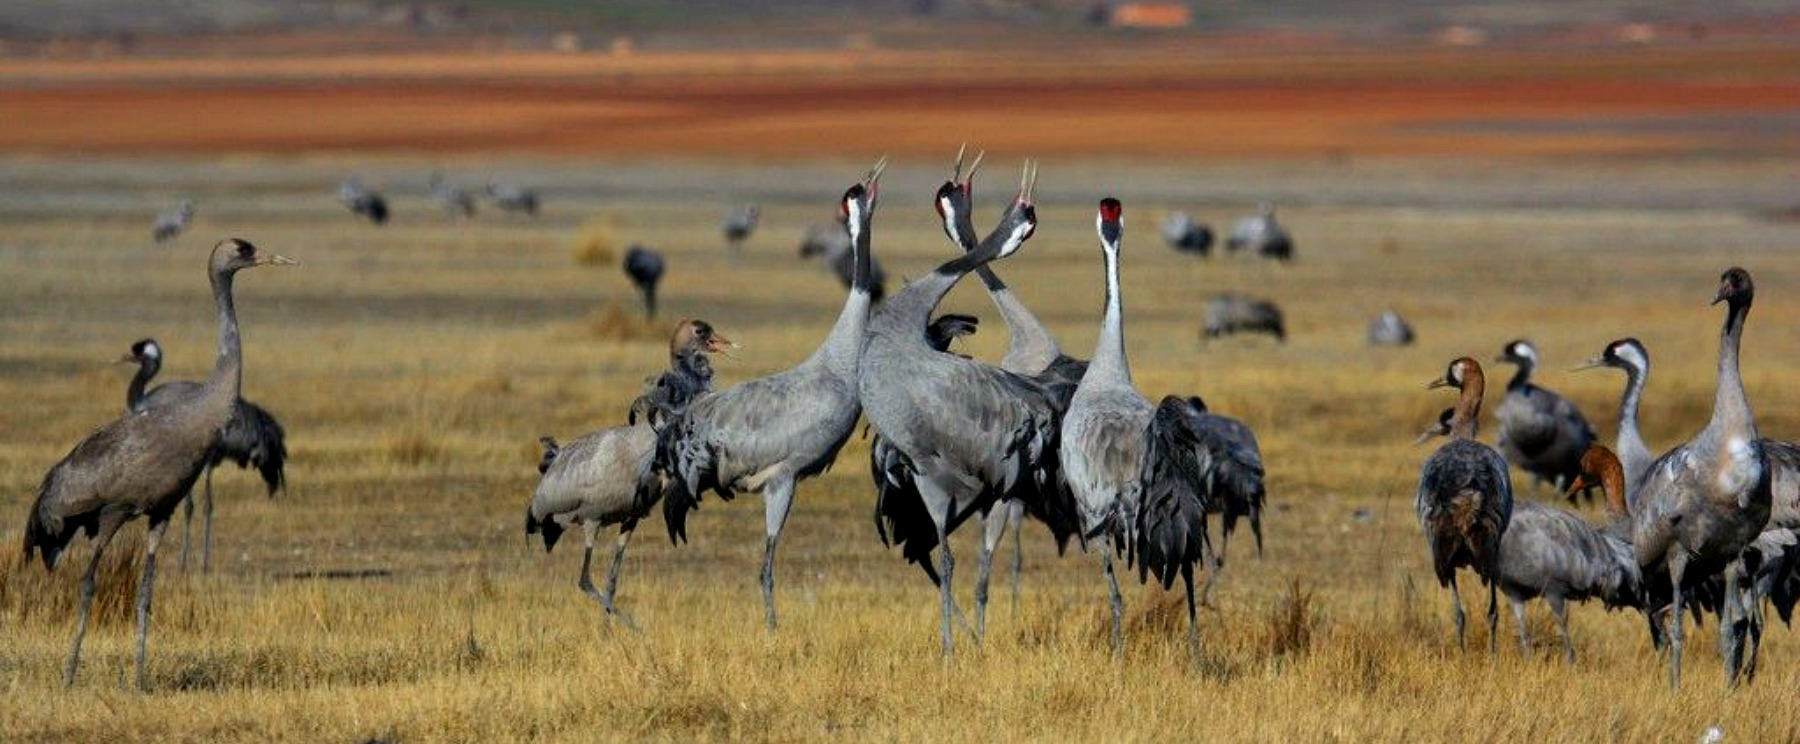 A group of common cranes begin to display with heads and beaks turned skywards on our Birds of Northern Spain trip in the Spanish Pyrenees